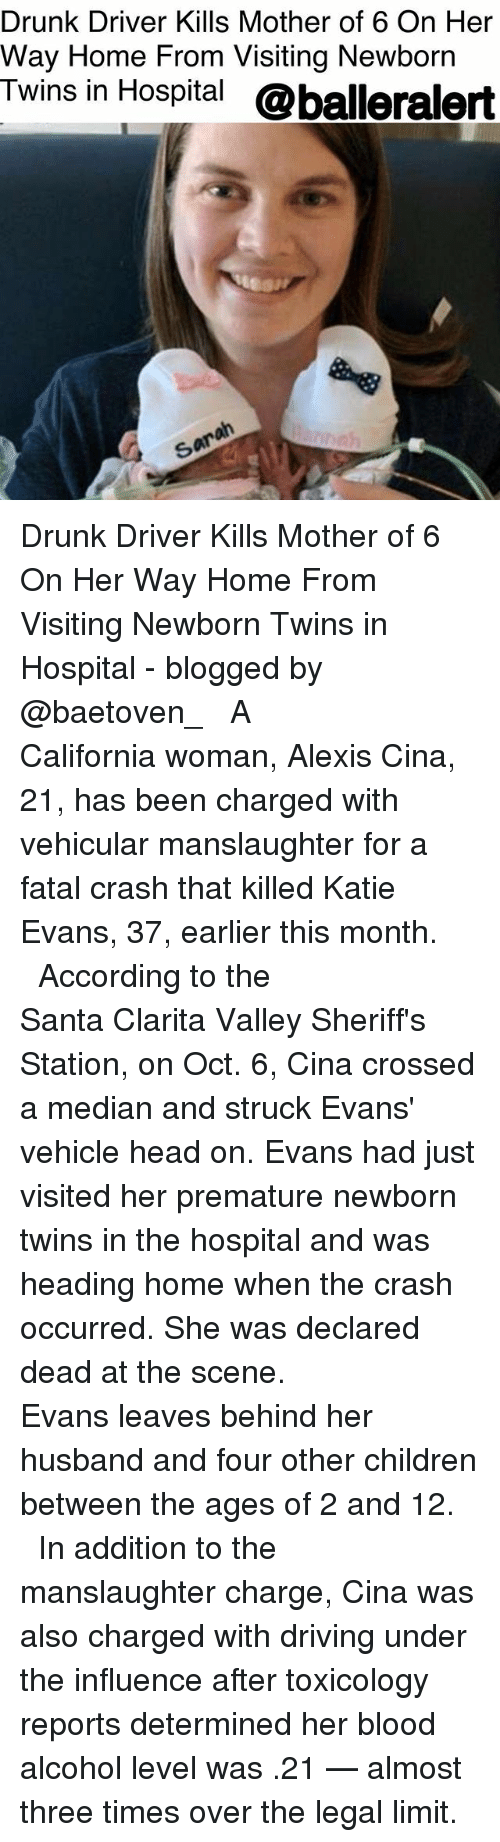 Children, Driving, and Drunk: Drunk Driver Kills Mother of 6 On Her  Way Home From Visiting Newborn  Twins in Hospital @balleralert Drunk Driver Kills Mother of 6 On Her Way Home From Visiting Newborn Twins in Hospital - blogged by @baetoven_ ⠀⠀⠀⠀⠀⠀⠀ ⠀⠀⠀⠀⠀⠀⠀ A California woman, Alexis Cina, 21, has been charged with vehicular manslaughter for a fatal crash that killed Katie Evans, 37, earlier this month. ⠀⠀⠀⠀⠀⠀⠀ ⠀⠀⠀⠀⠀⠀⠀ According to the Santa Clarita Valley Sheriff's Station, on Oct. 6, Cina crossed a median and struck Evans' vehicle head on. Evans had just visited her premature newborn twins in the hospital and was heading home when the crash occurred. She was declared dead at the scene. ⠀⠀⠀⠀⠀⠀⠀ ⠀⠀⠀⠀⠀⠀⠀ Evans leaves behind her husband and four other children between the ages of 2 and 12. ⠀⠀⠀⠀⠀⠀⠀ ⠀⠀⠀⠀⠀⠀⠀ In addition to the manslaughter charge, Cina was also charged with driving under the influence after toxicology reports determined her blood alcohol level was .21 — almost three times over the legal limit.